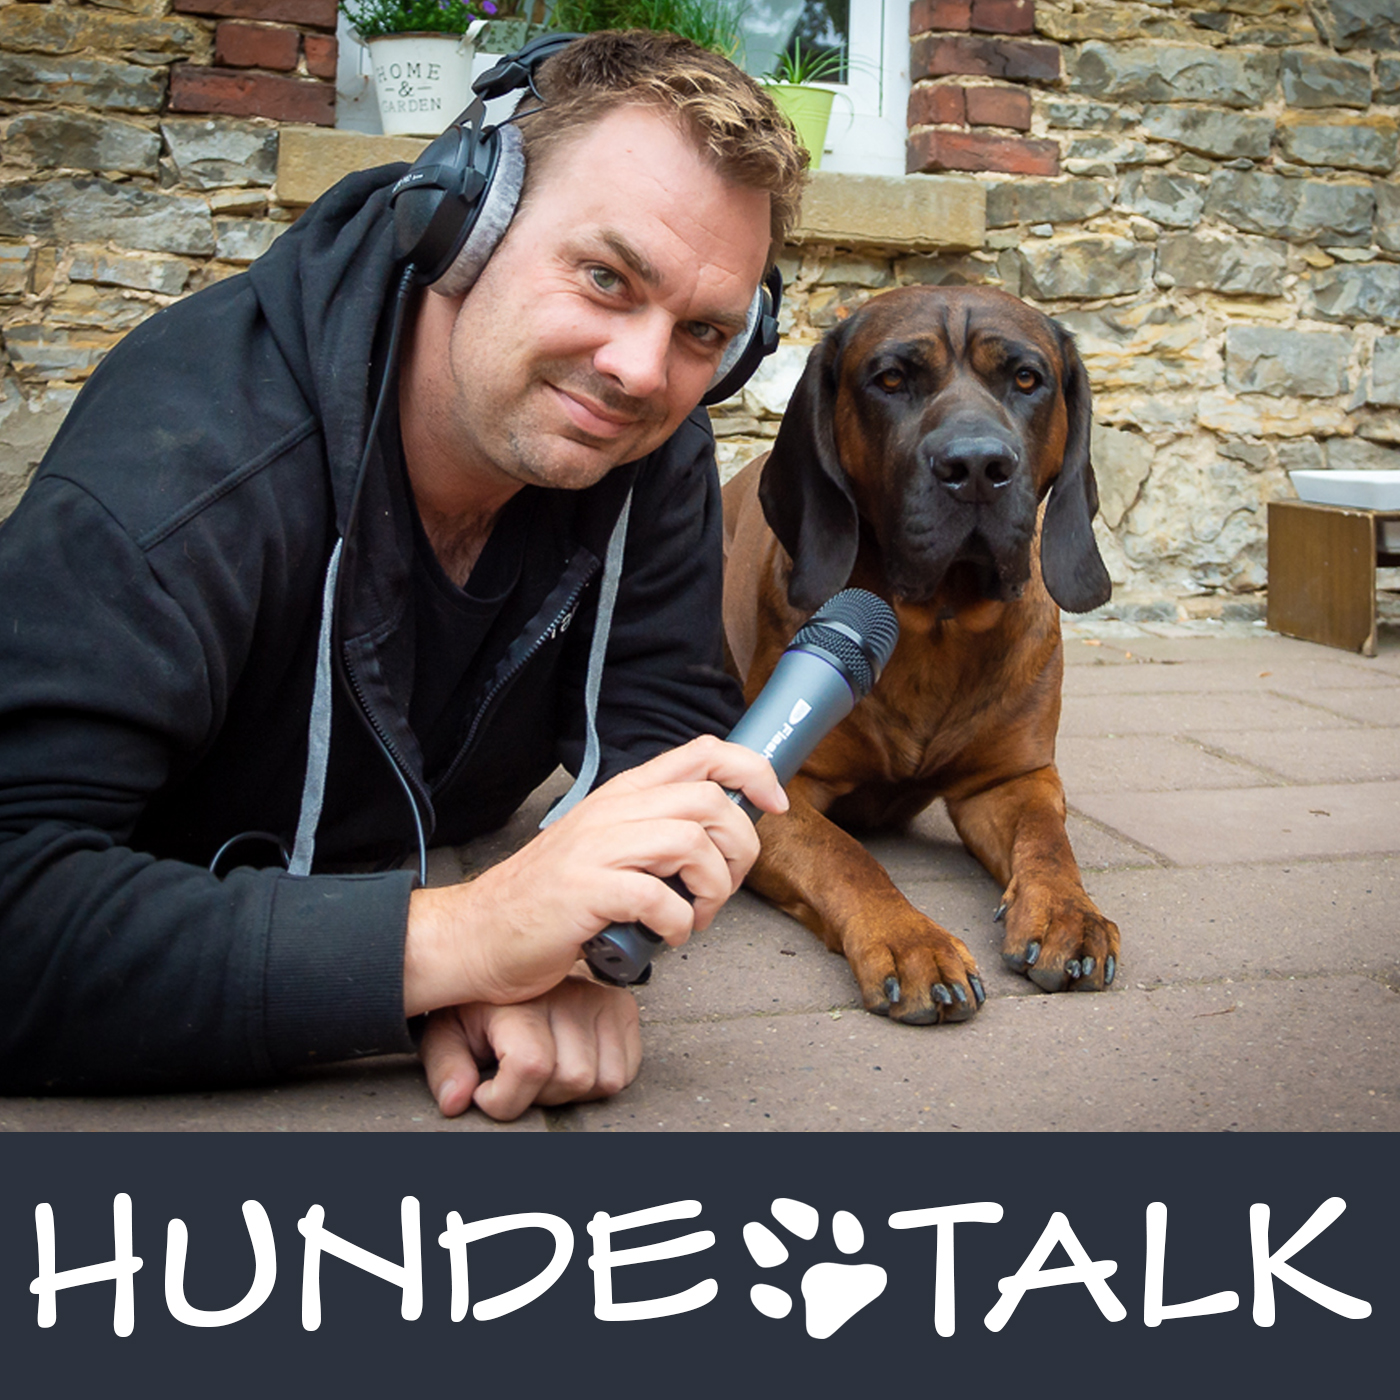 Cover des Hundetalk Podcasts